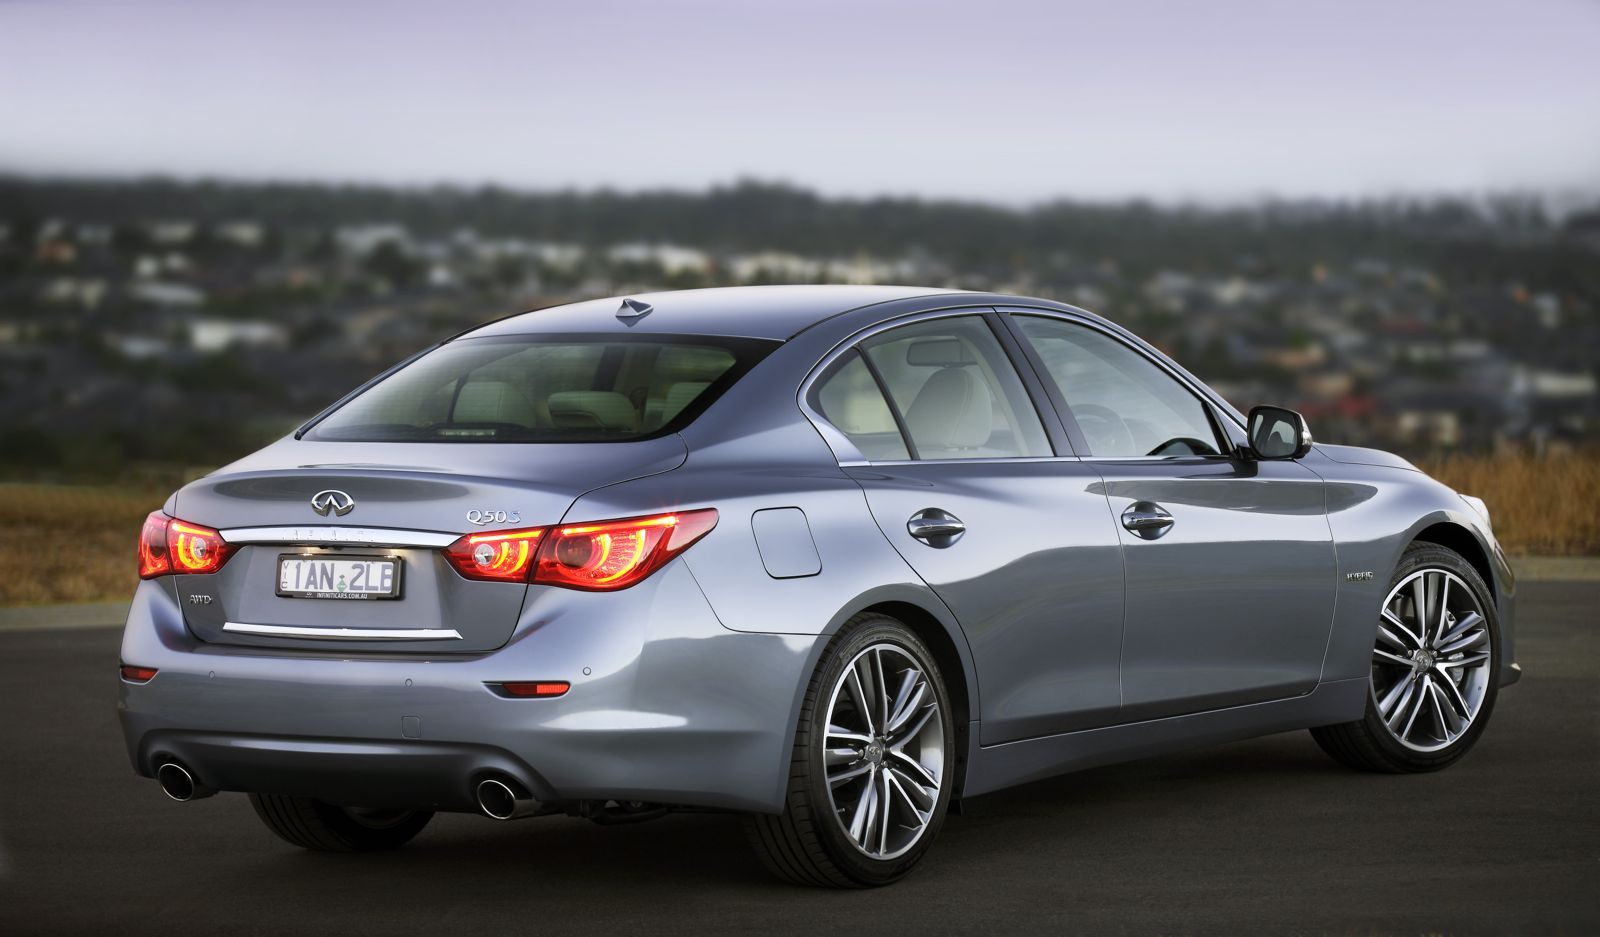 Infiniti Q50 Specs >> Infiniti Q50 : pricing and specifications - Photos (1 of 14)